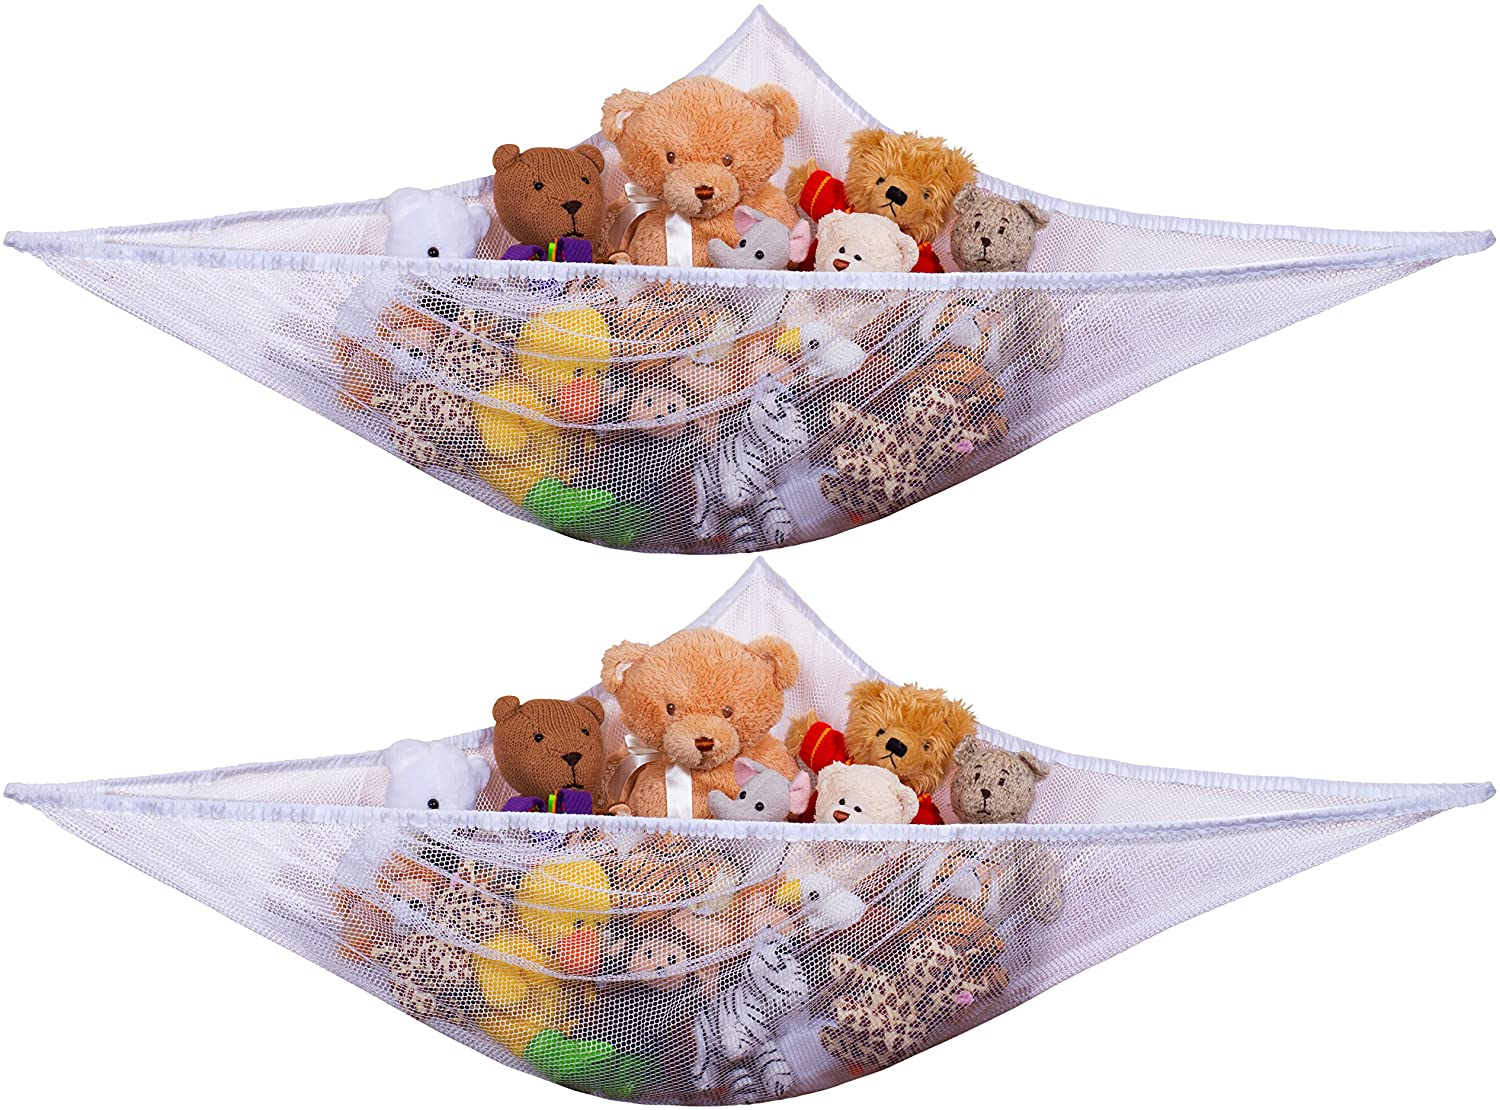 Jumbo Toy Hammock, White - Organize Stuffed Animals and Children's Toys with this Mesh Hammock. Great Decor while Neatly Organizing Kid's Toys and Stuffed Animals. Expands to 5.5 feet. (2-Pack)